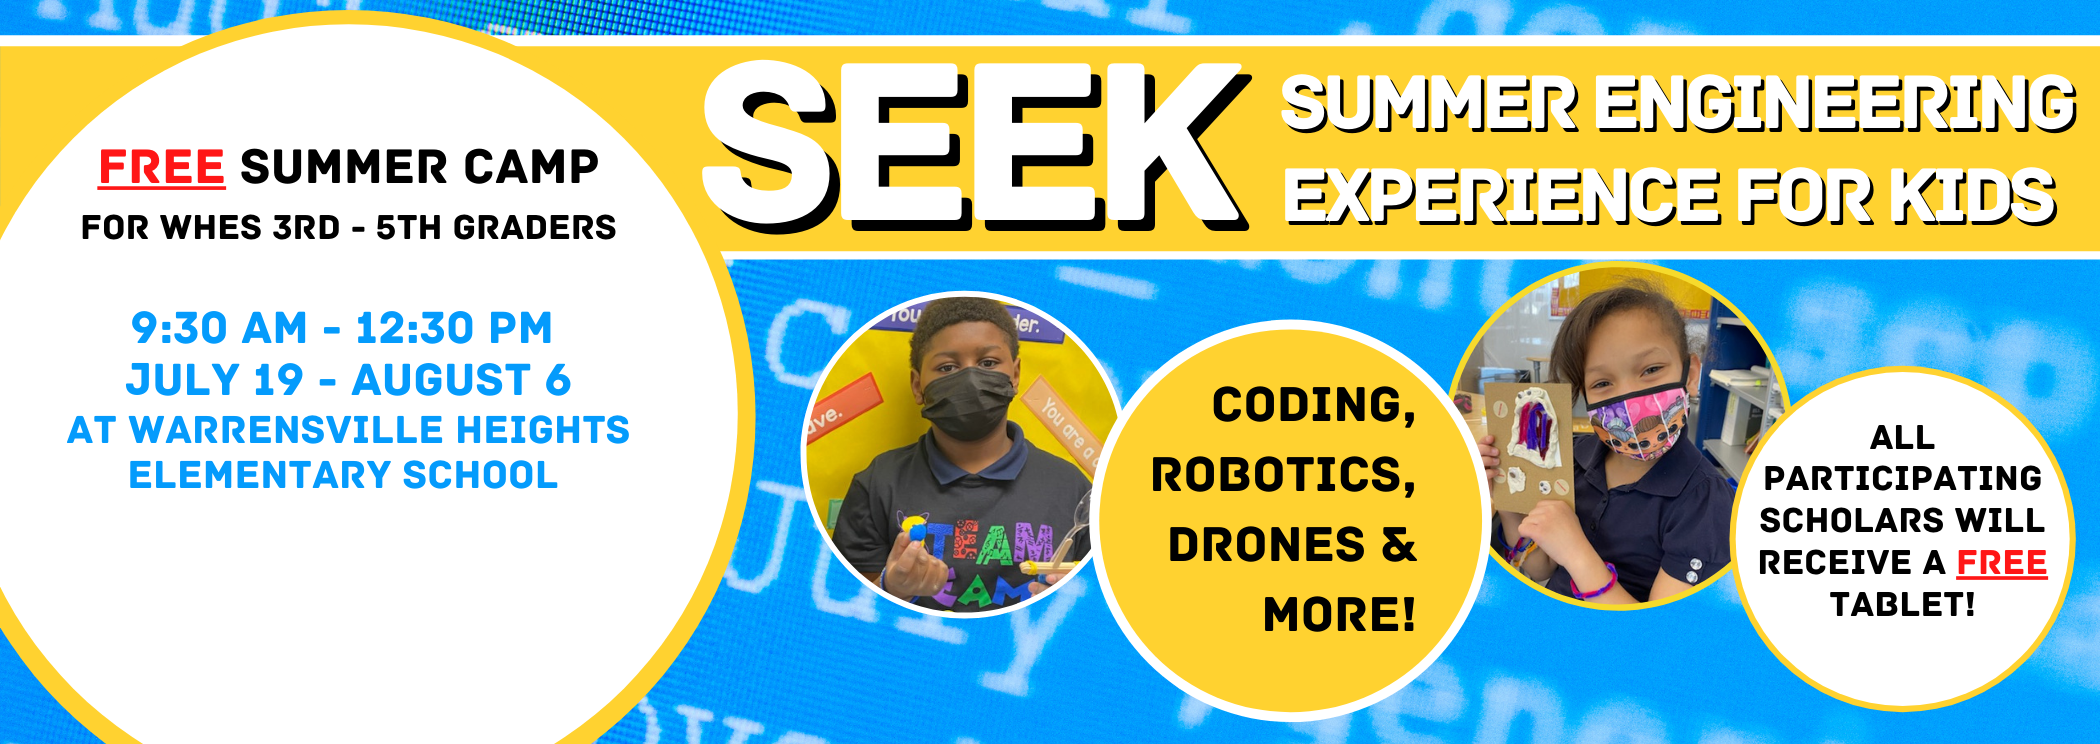 """SEEK SUmmer Engineering Experience for Kids Free Summer Camp for WHES 3 - 5 Graders 9:30 am - 12""""20 pm July 16 - August 6 At Warrensville HEights Elementary School Coding, Robotics, Drones & more, All participating scholars will recieve a free tablet"""